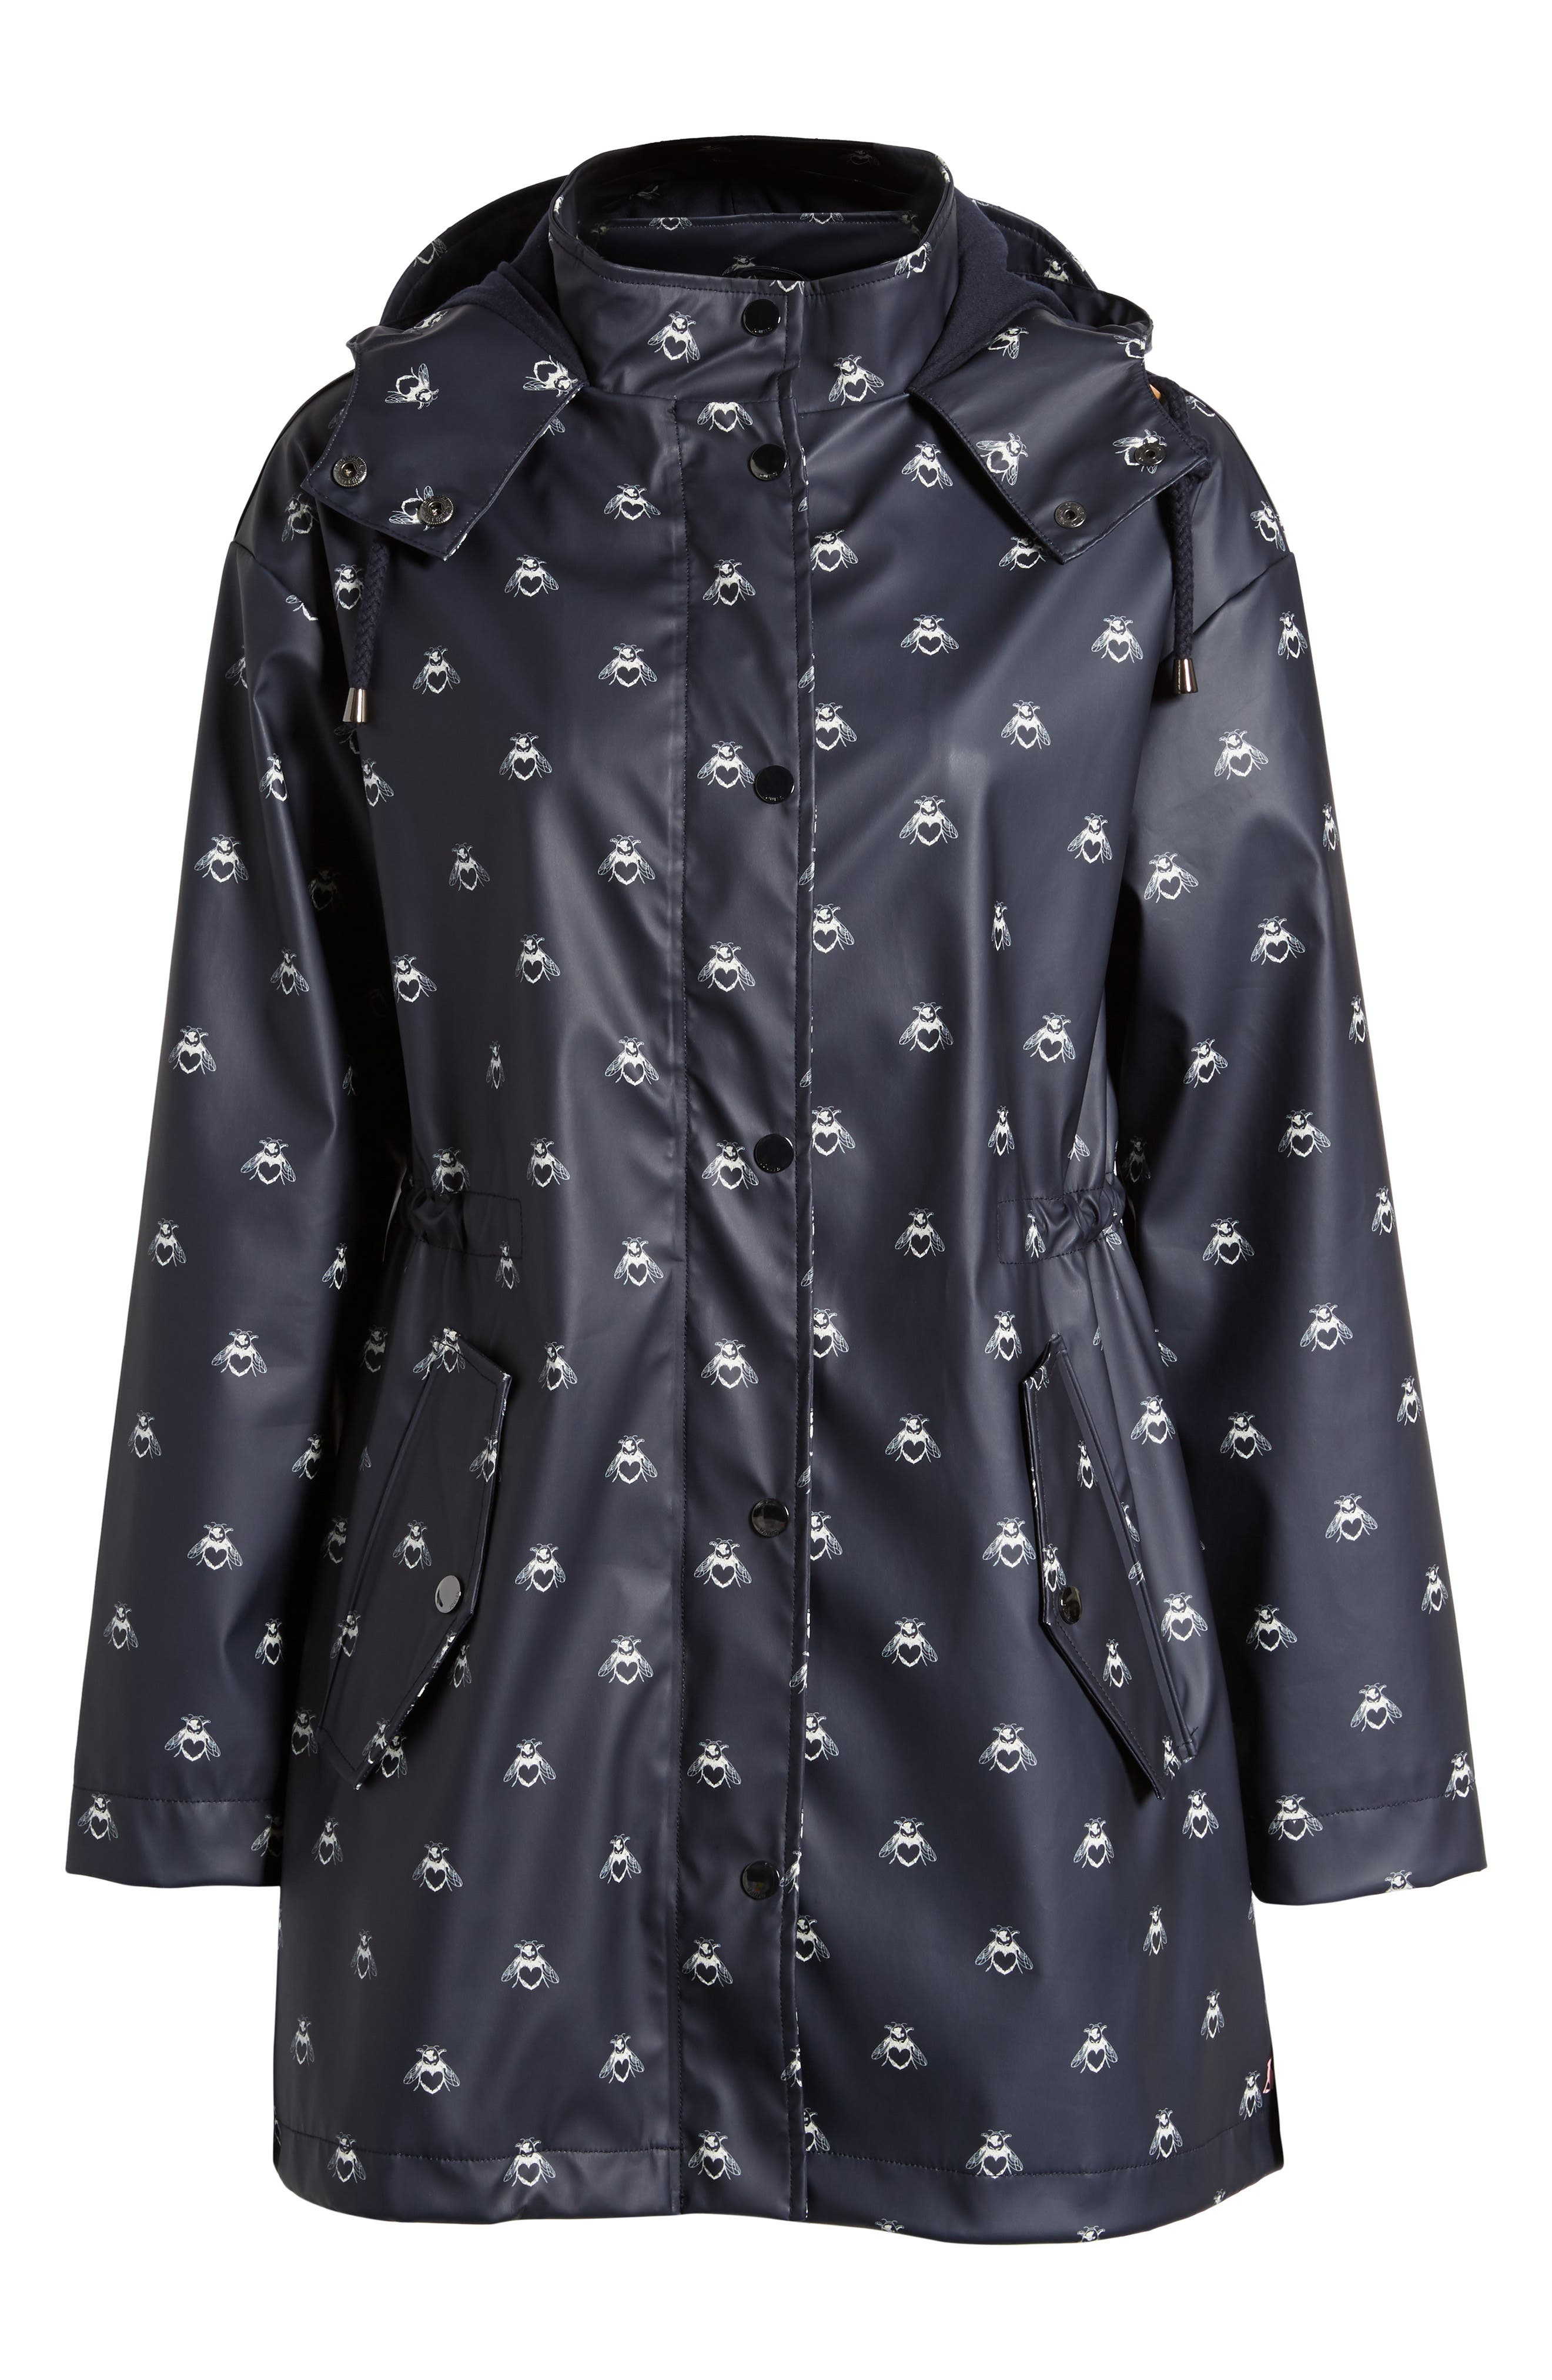 Right As Rain Packable Hooded Raincoat,                             Alternate thumbnail 6, color,                             Navy Love Bees